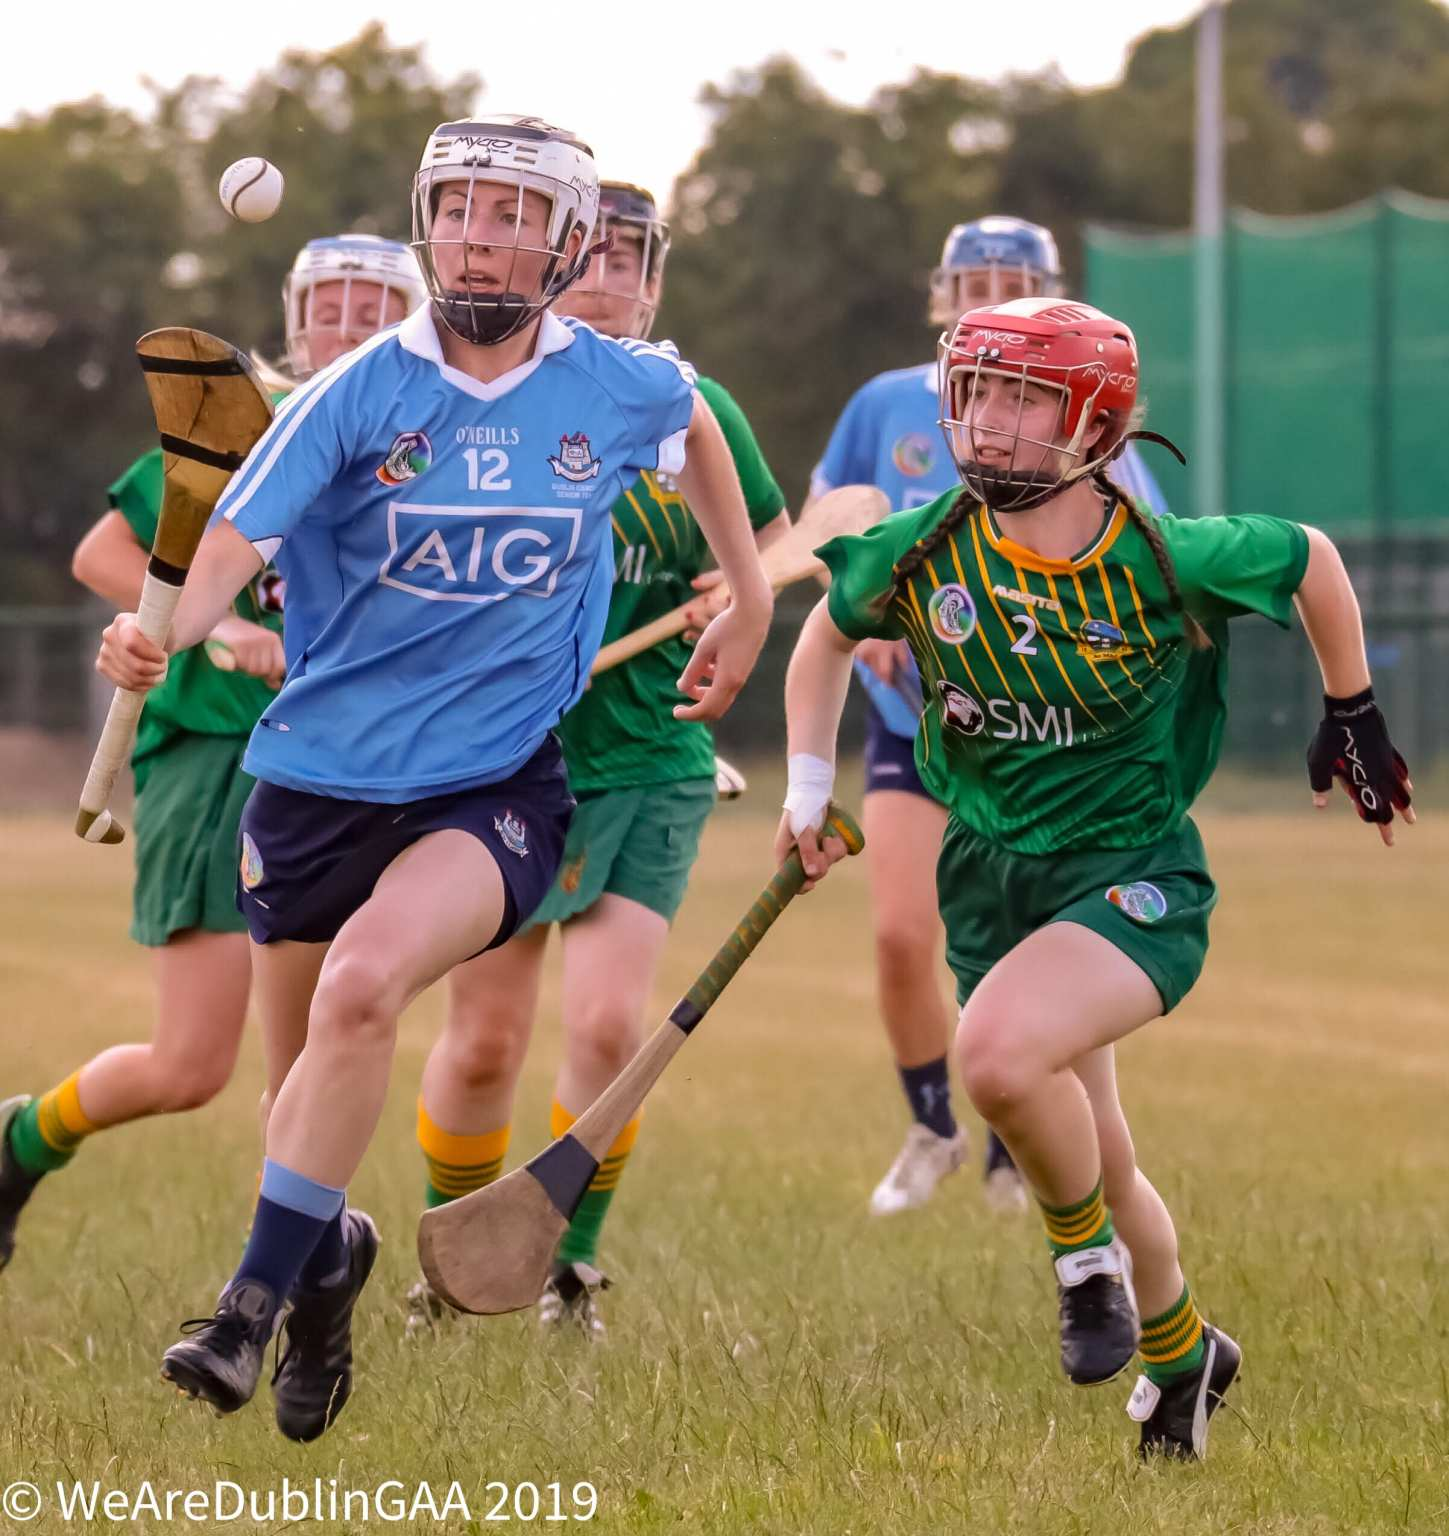 Dublin Camogie player races away with the ball on her hurl from a Meath player in the Senior All Ireland Championship both sides meet again this weekend.